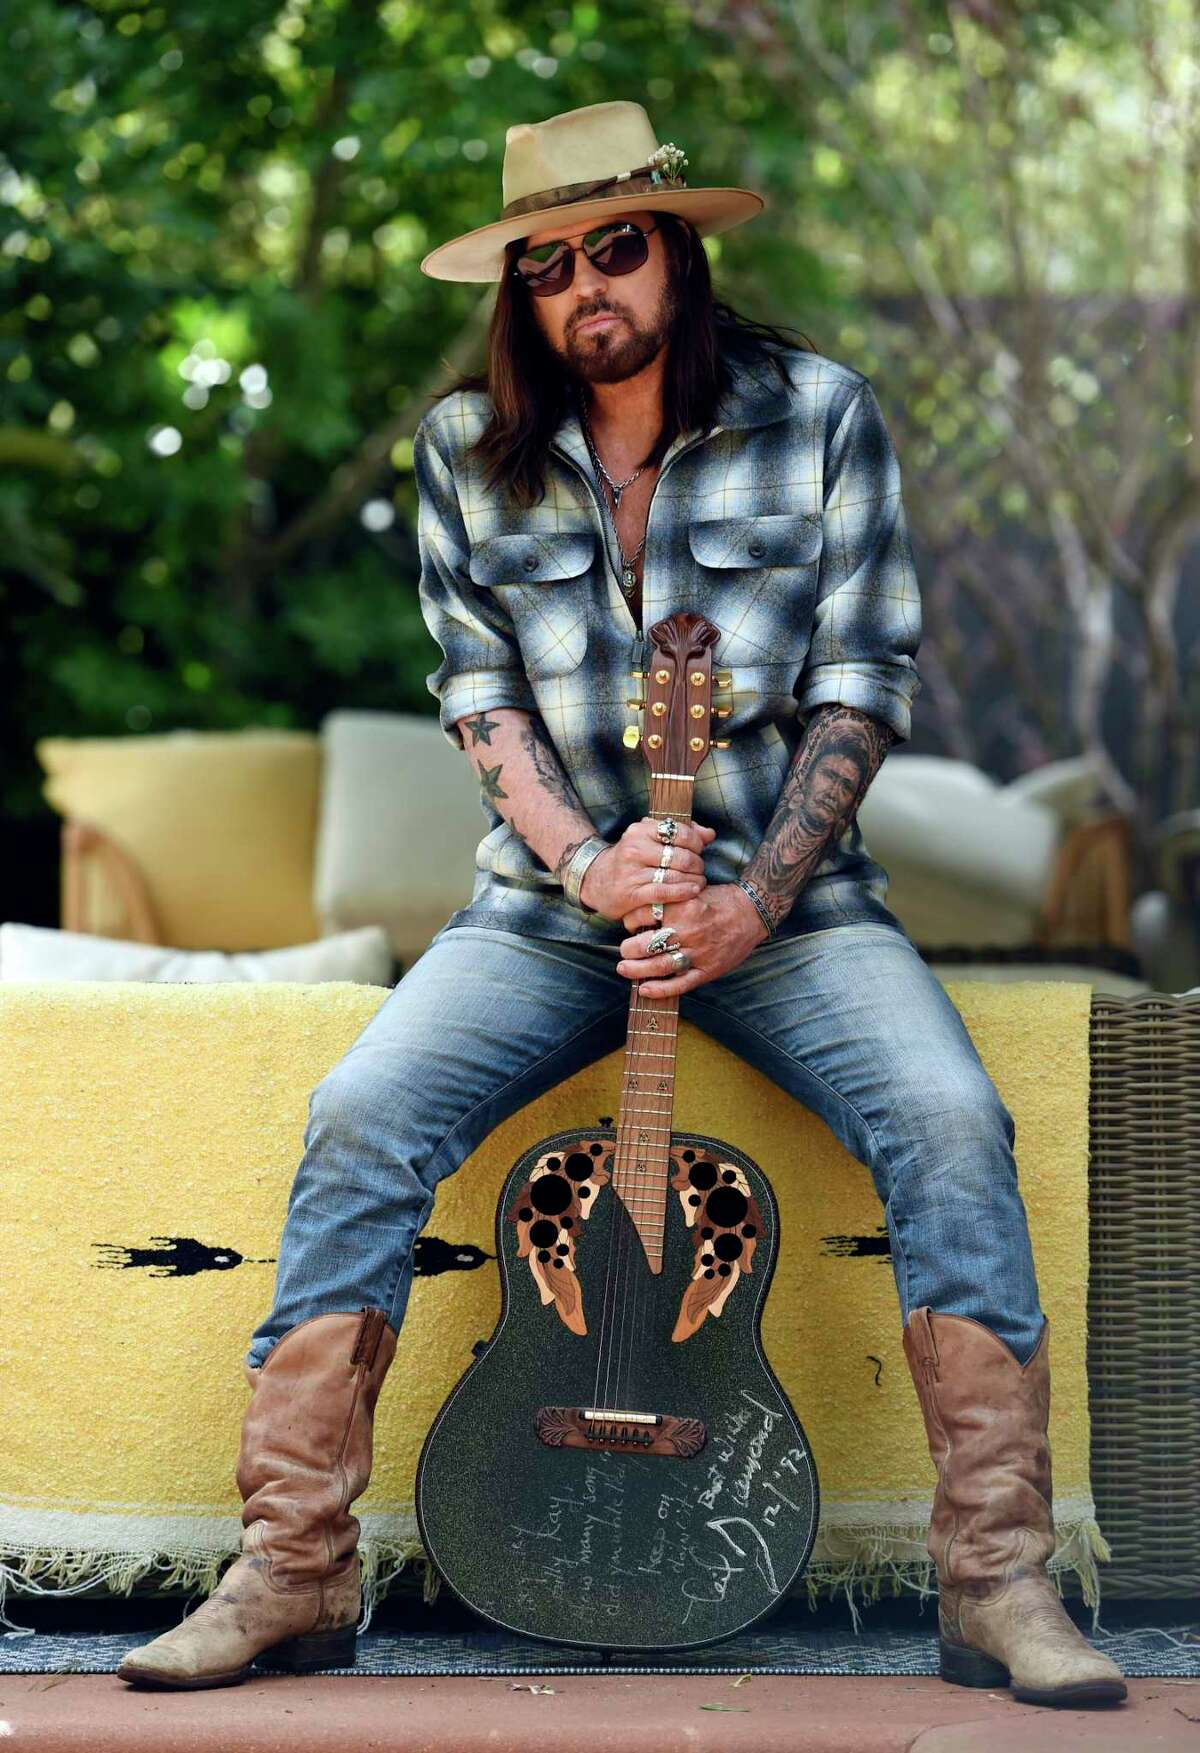 """CORRECTS NAME OF THREE-SONG EP TO """"THE SINGIN' HILLS SESSIONS VOL. 1 SUNSET"""" - Singer-songwriter Billy Ray Cyrus poses for a portrait with an Ovation guitar presented to him by Neil Diamond in 1992, at his home in Los Angeles on Thursday, Jan. 30, 2020. The Kentucky-born singer won his first Grammy this year for his collaboration with rapper Lil Nas X on a€œOld Town Road.a€ Hea€™s releasing a three-song EP on Friday, a€œThe Singin' Hills Sessions Vol. 1 Sunset.a€ (AP Photo/Chris Pizzello)"""